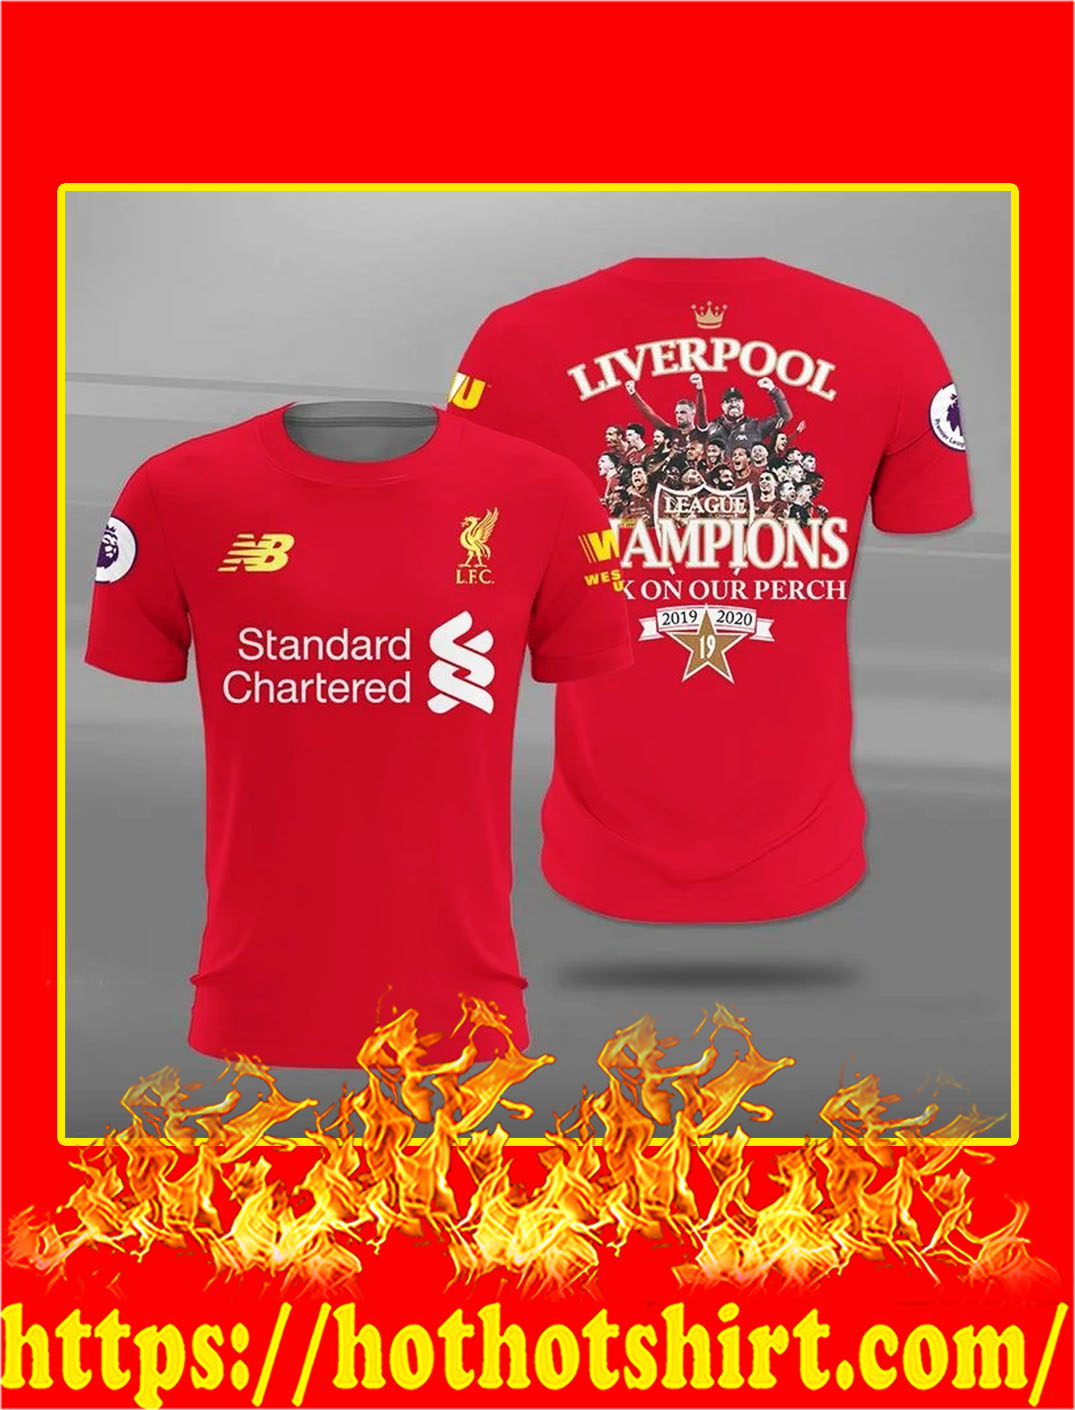 Liverpool champions back on our perch 3d t-shirt